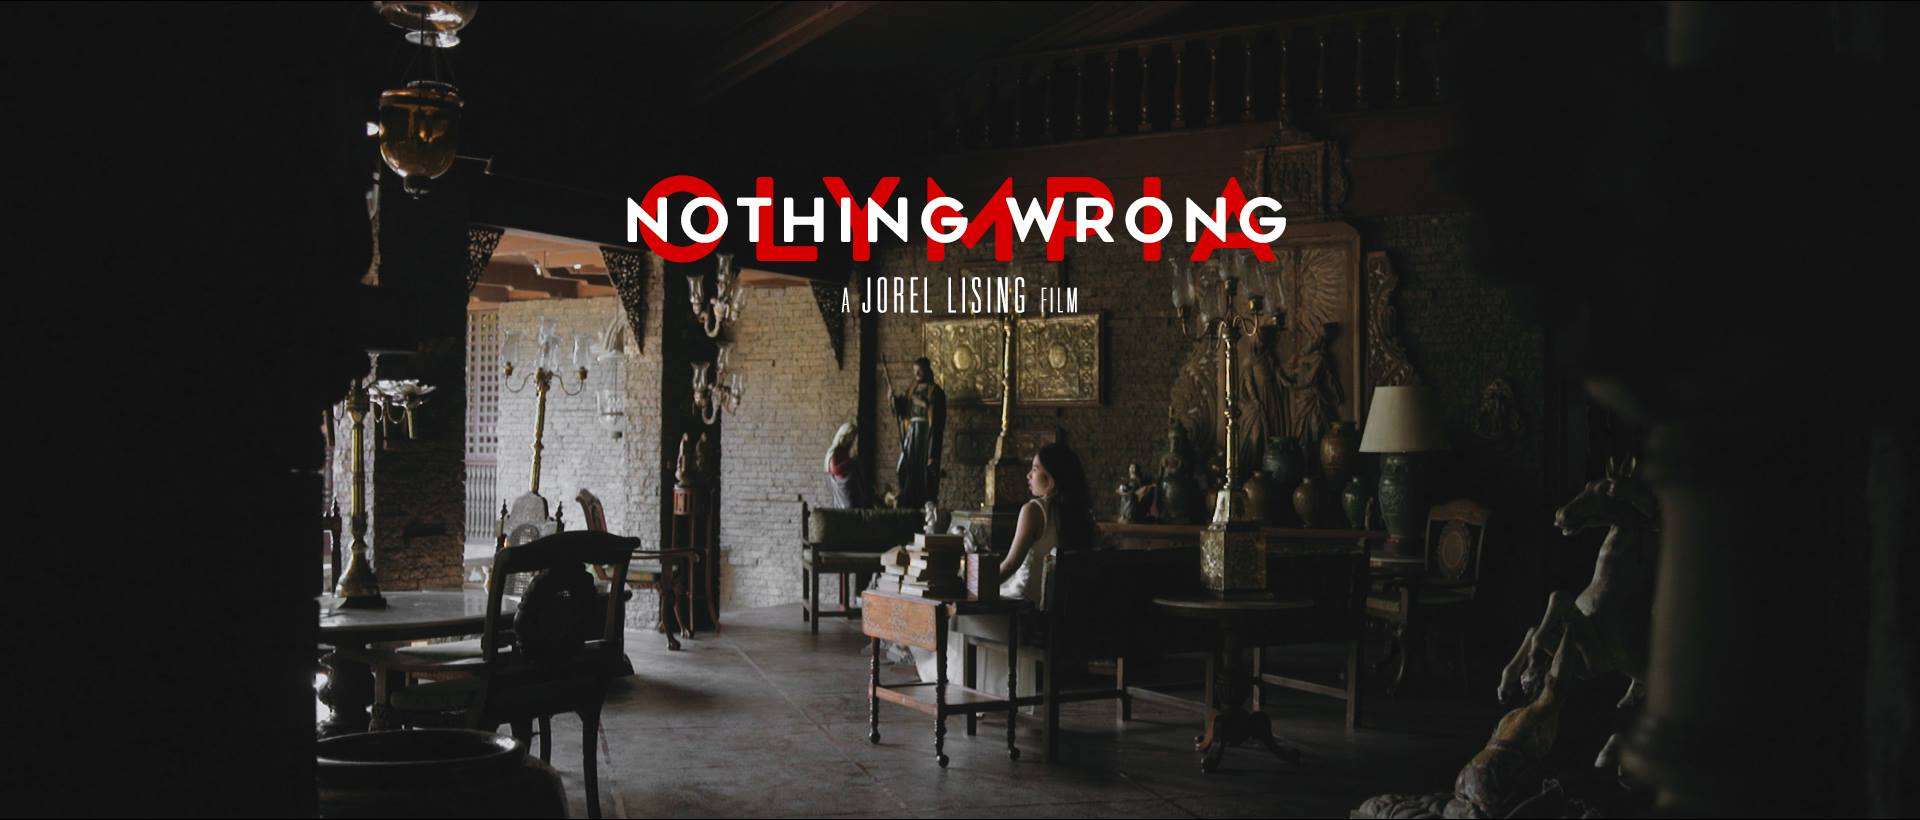 "Olympia Releases Music Video For Debut Single ""Nothing Wrong"""